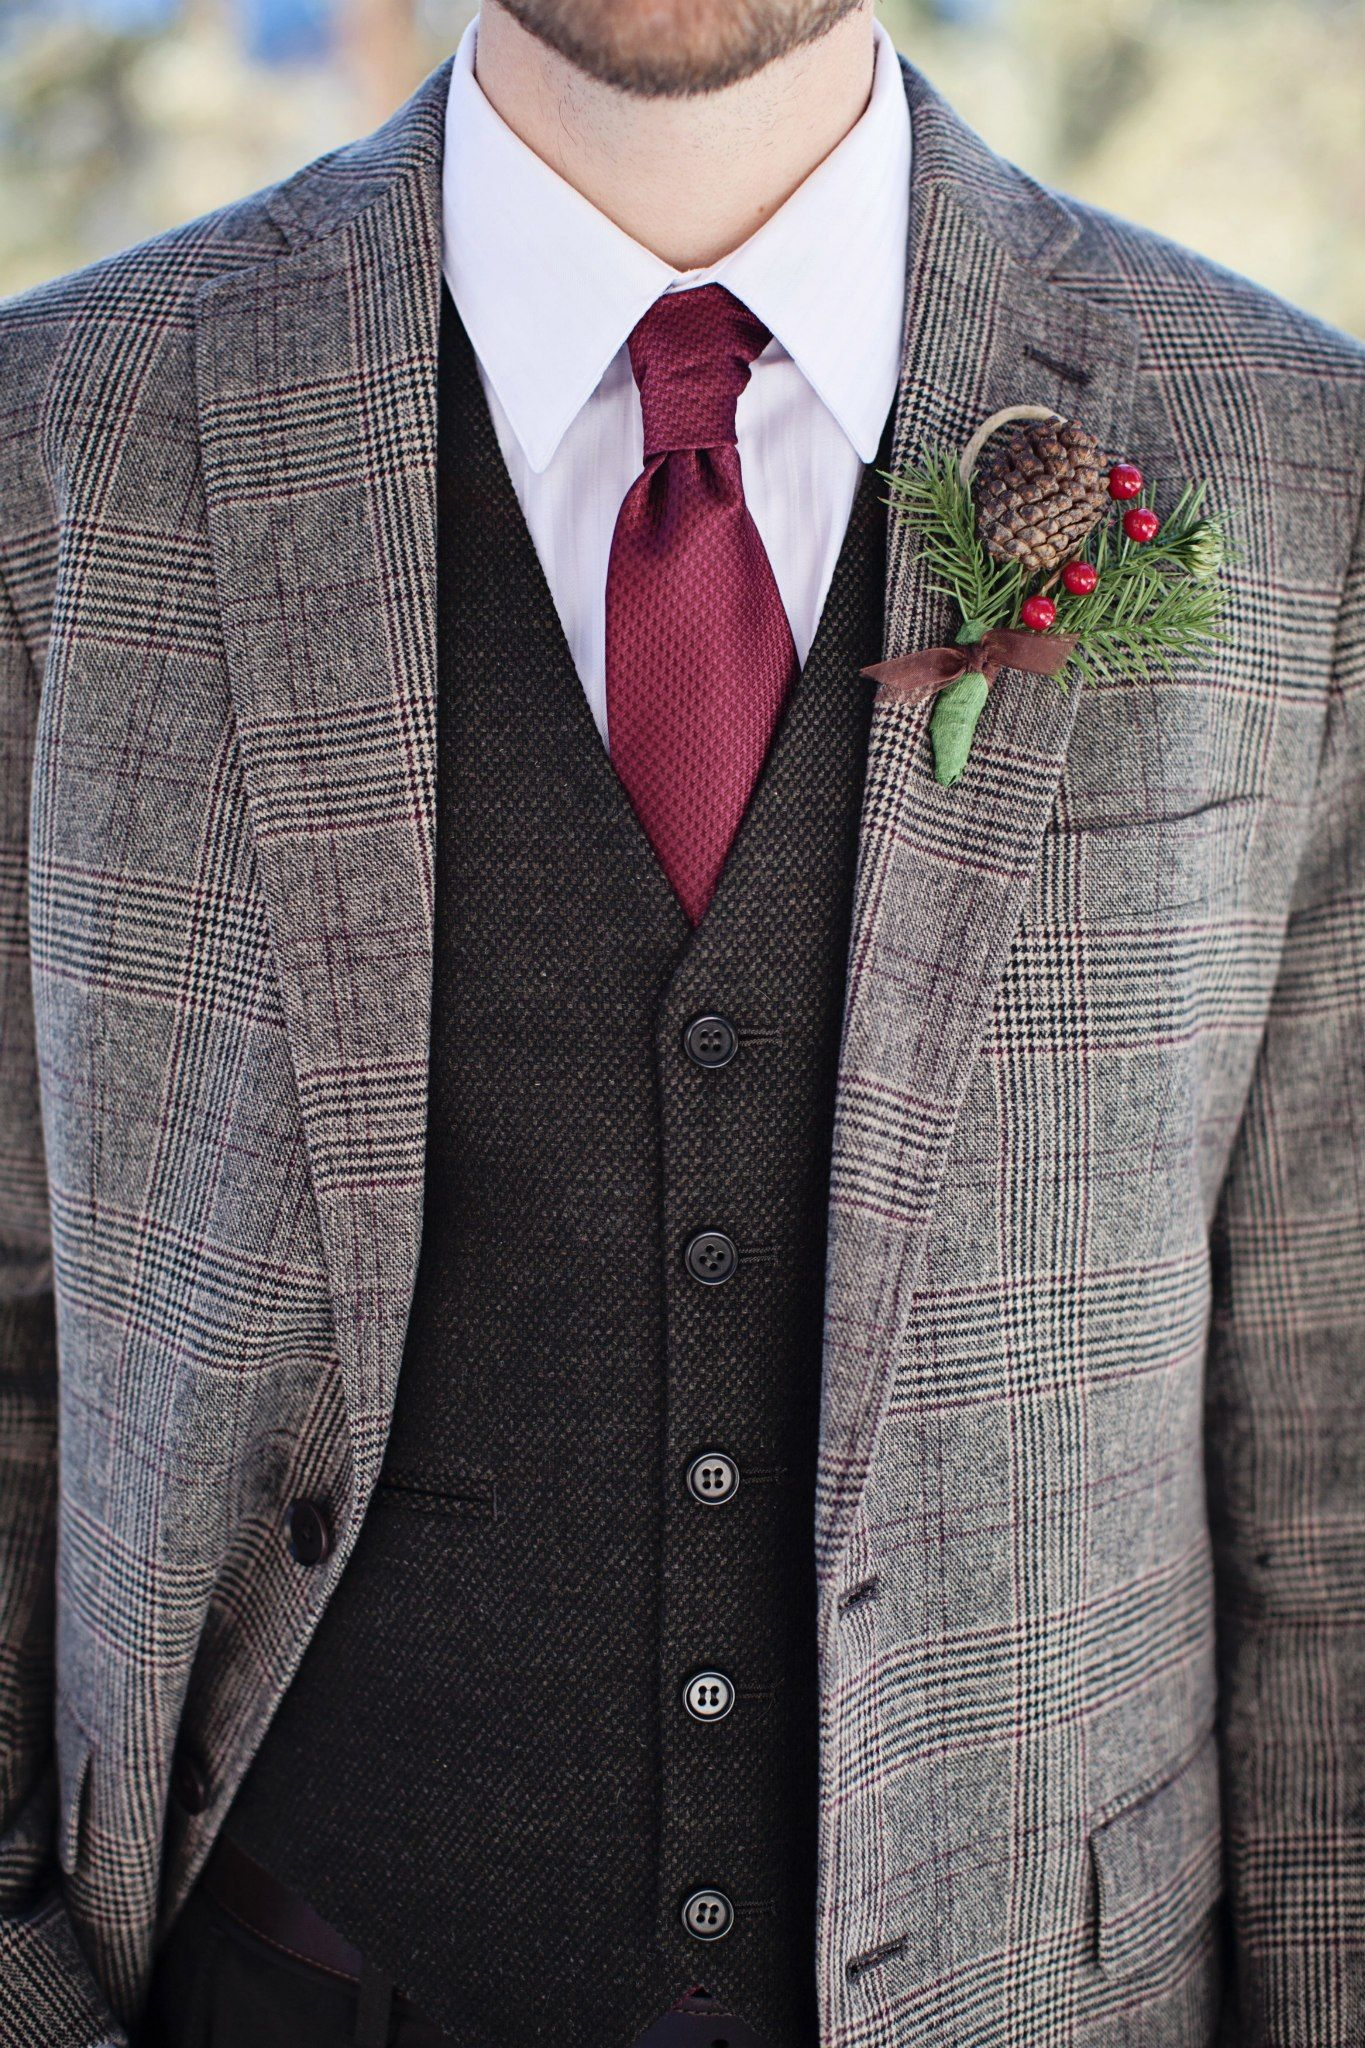 21 Patterned Suits To Dress Up Your Grooms Look